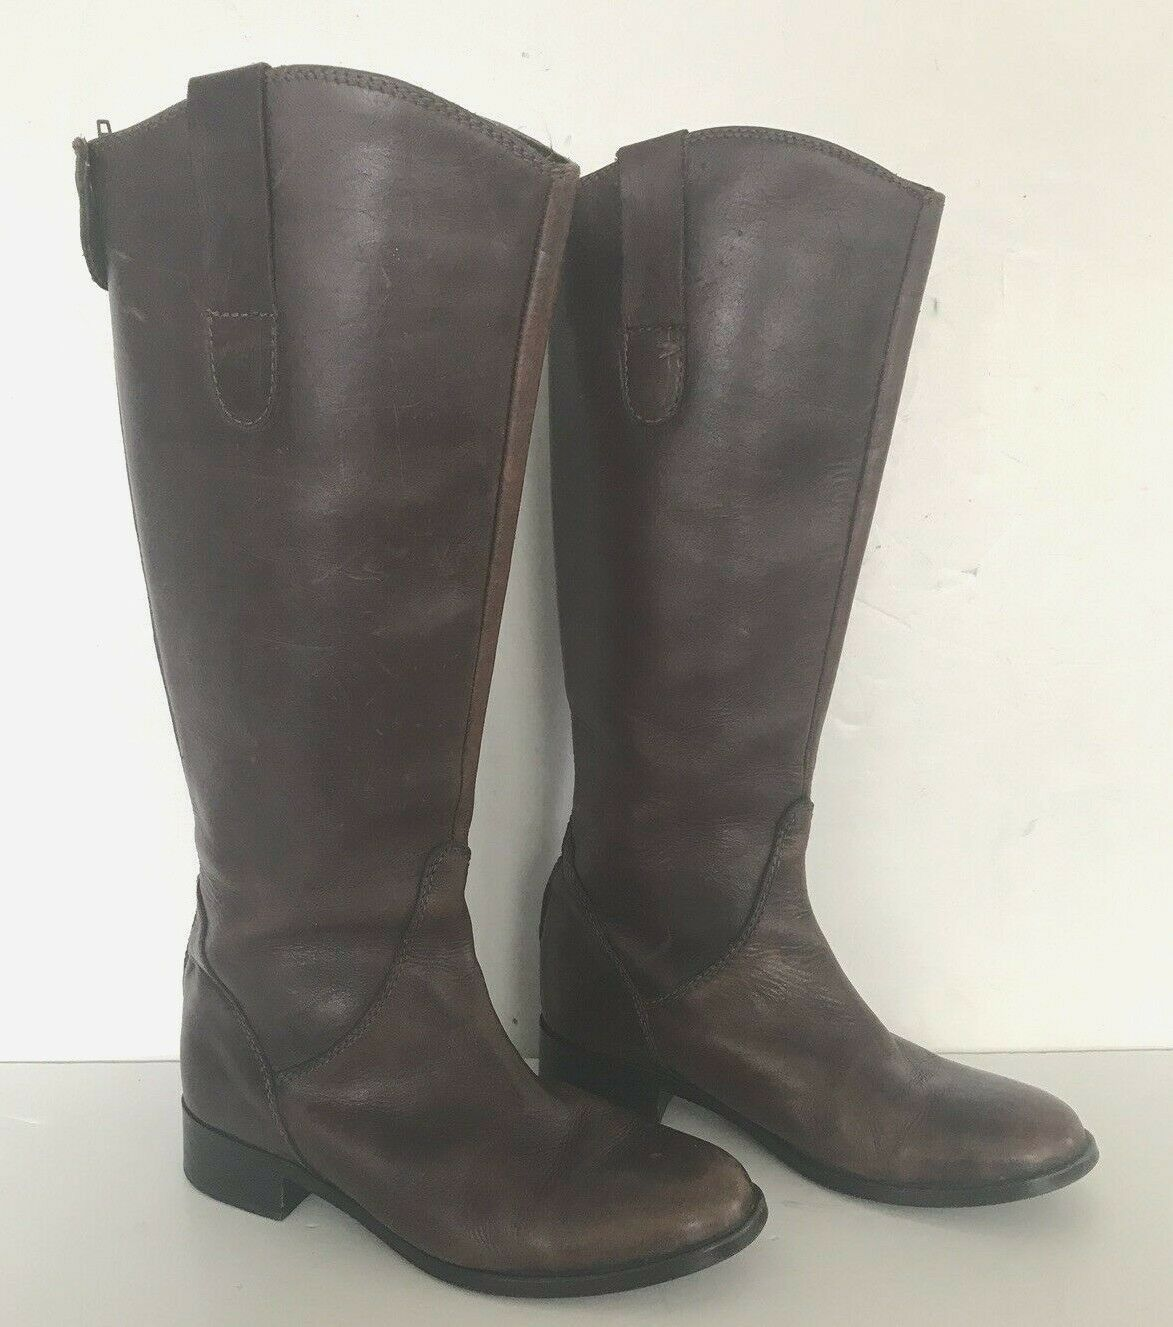 Steve Madden Womens Brown Leather Riding Boots Size 9.5 TALL CALF 9 1 2